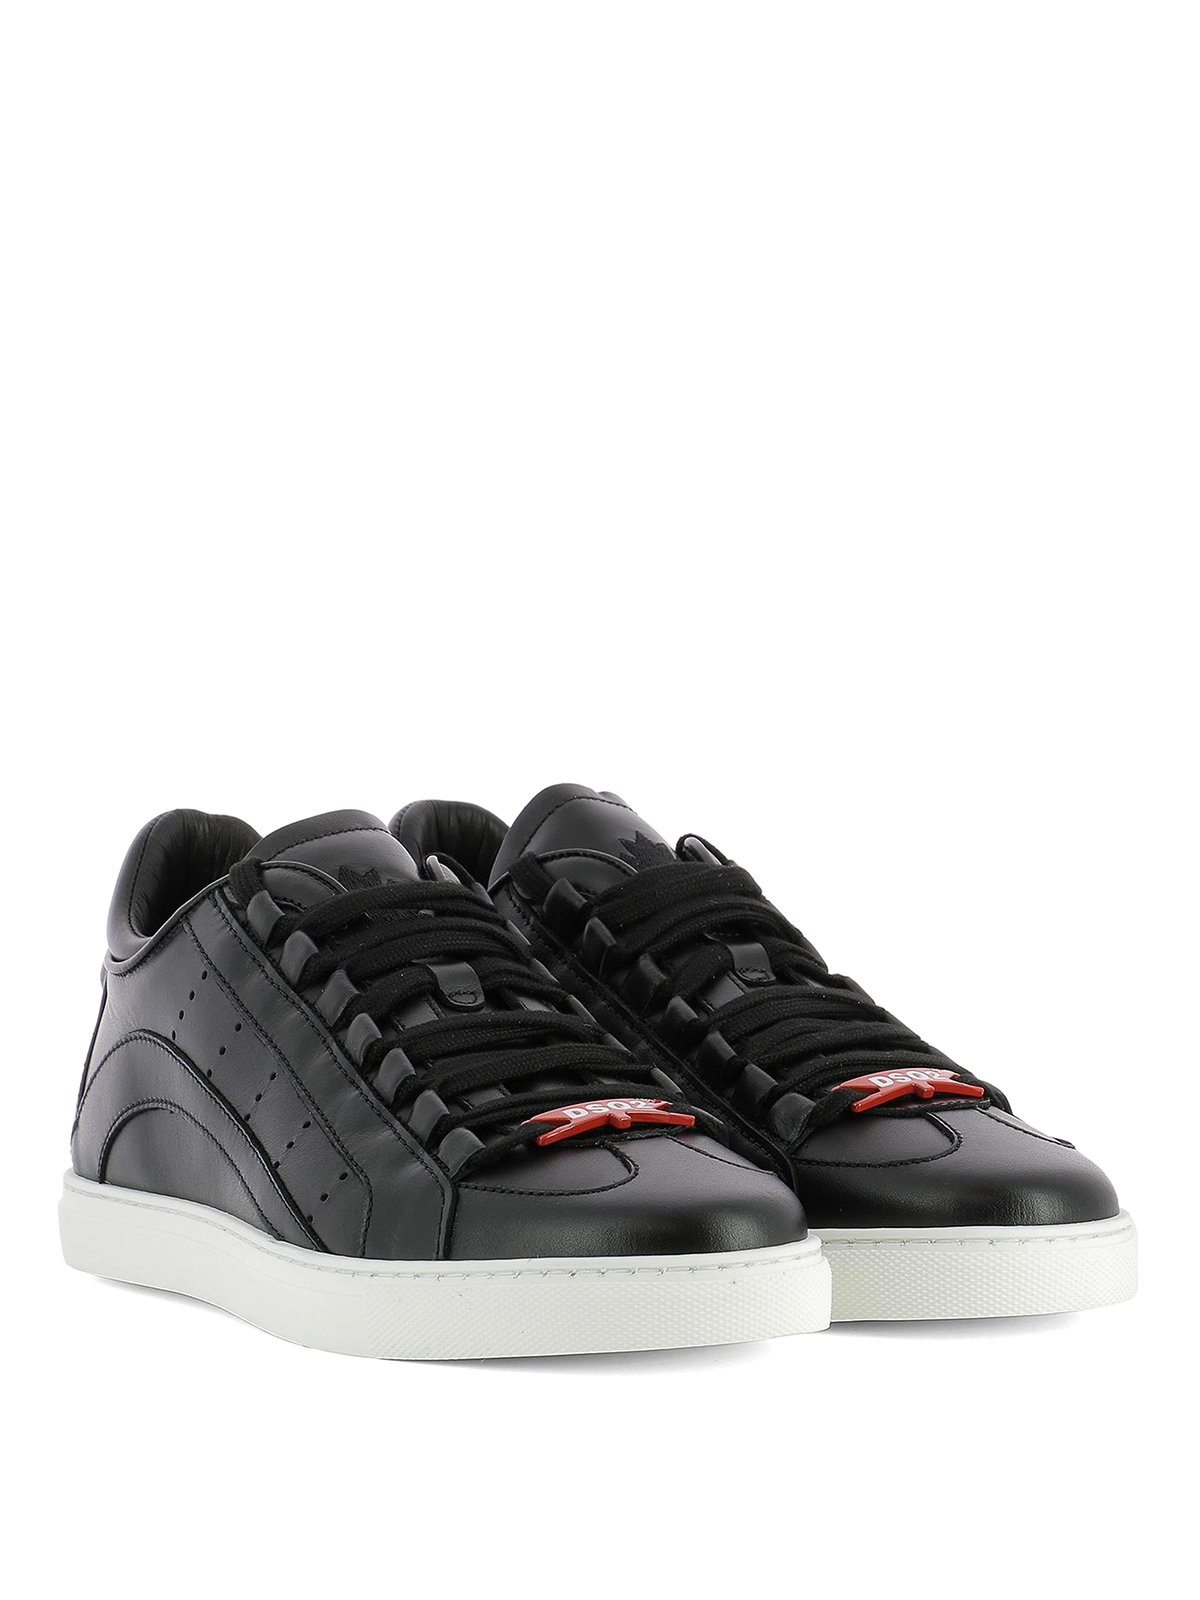 Dsquared2 - 551 black leather sneakers